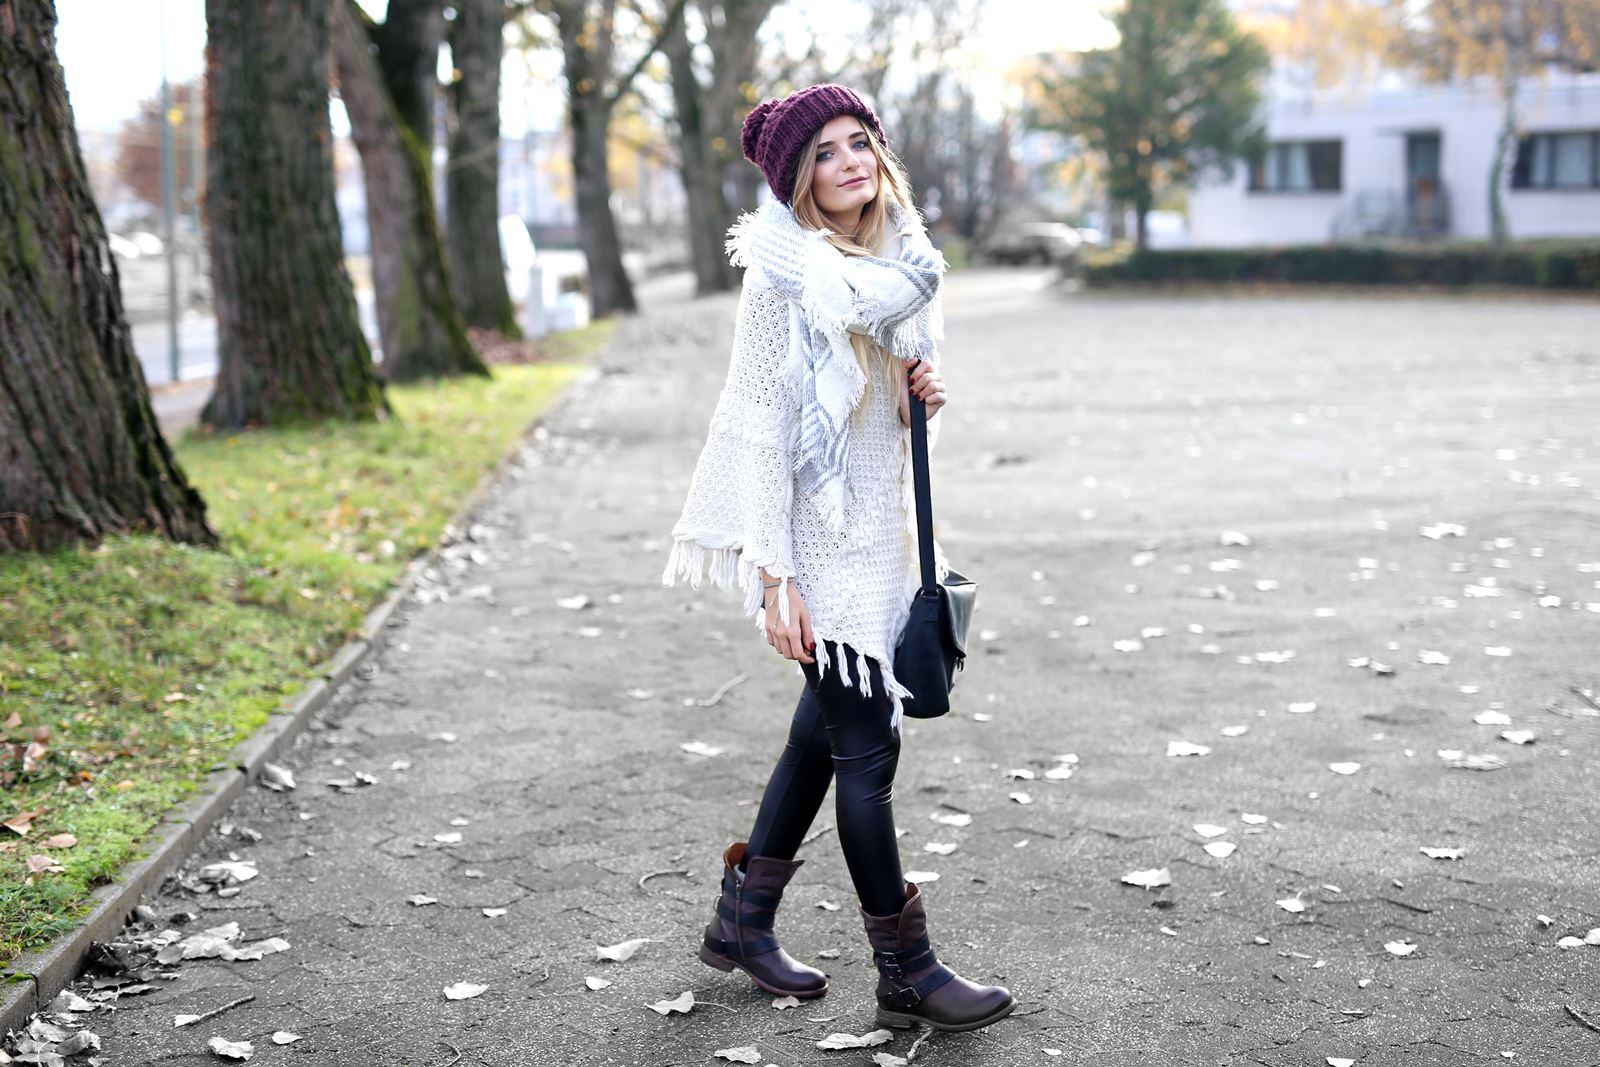 modeblog-german-fashion-blog-herbst-outfit-poncho-xxl-schal-2